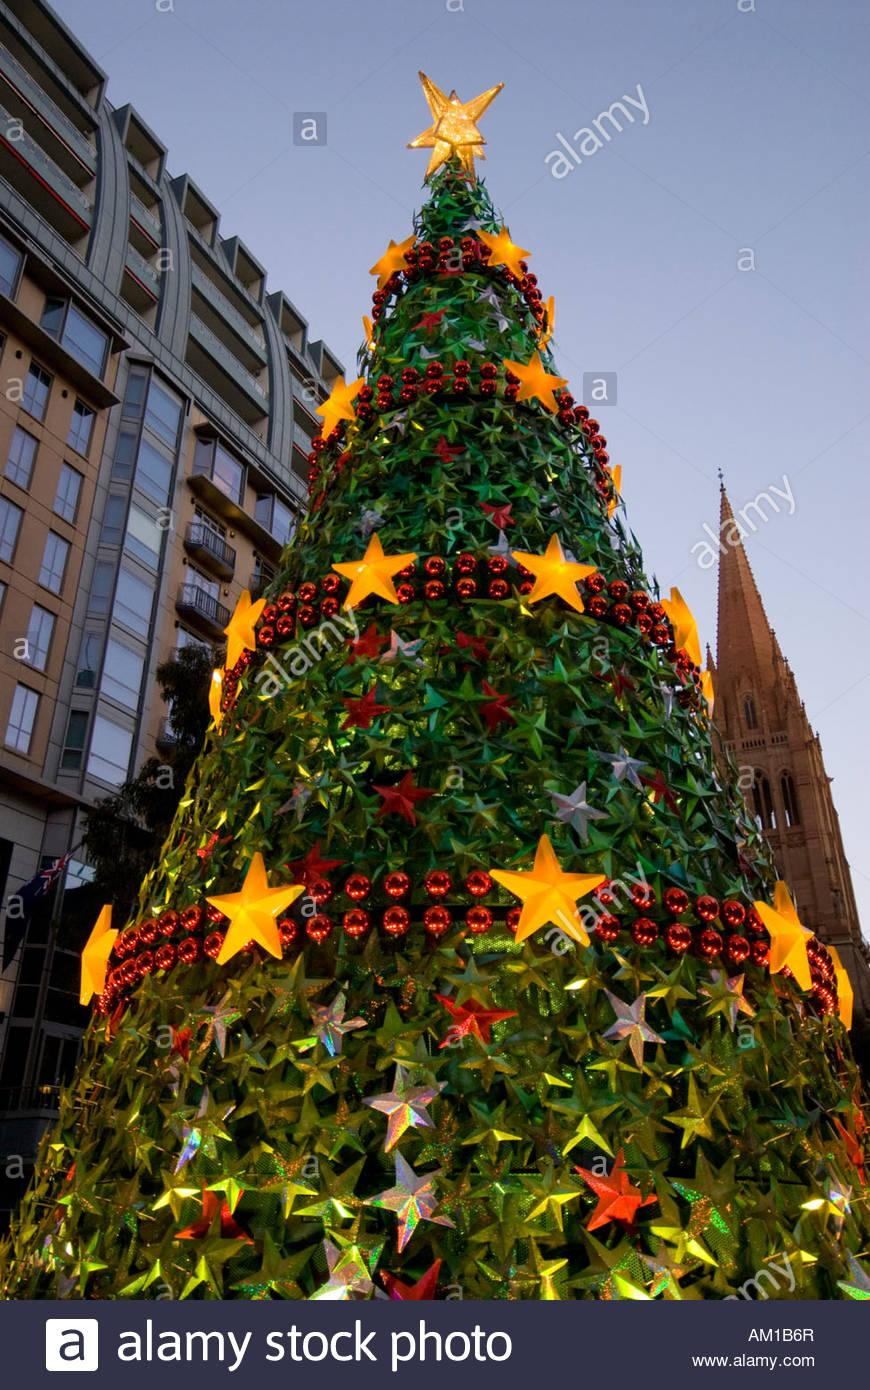 Image result for christmas decorations in australia